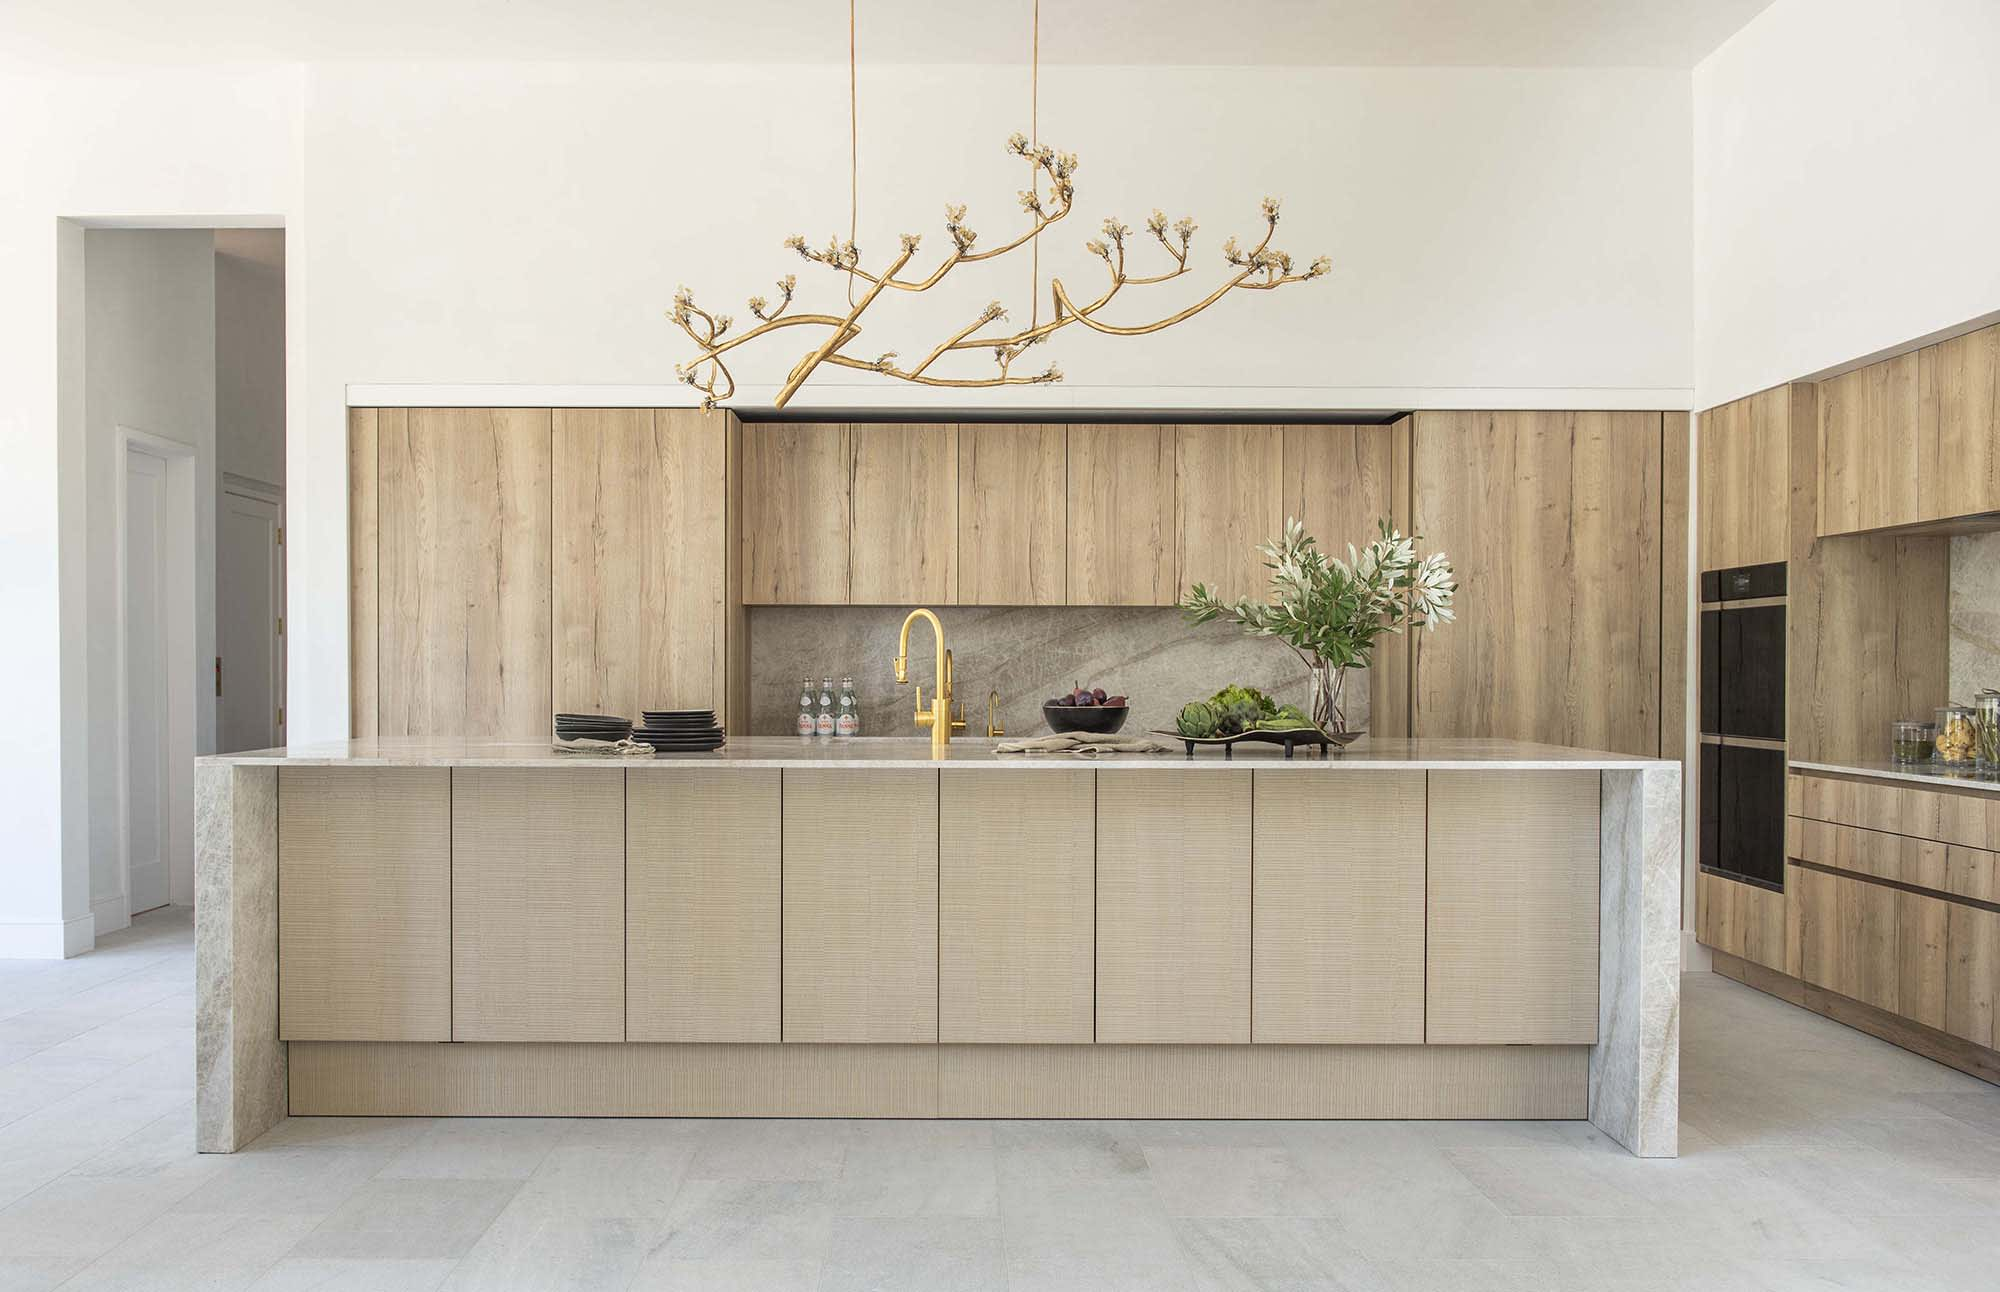 Project: Houston New Construction Timeless Kitchen